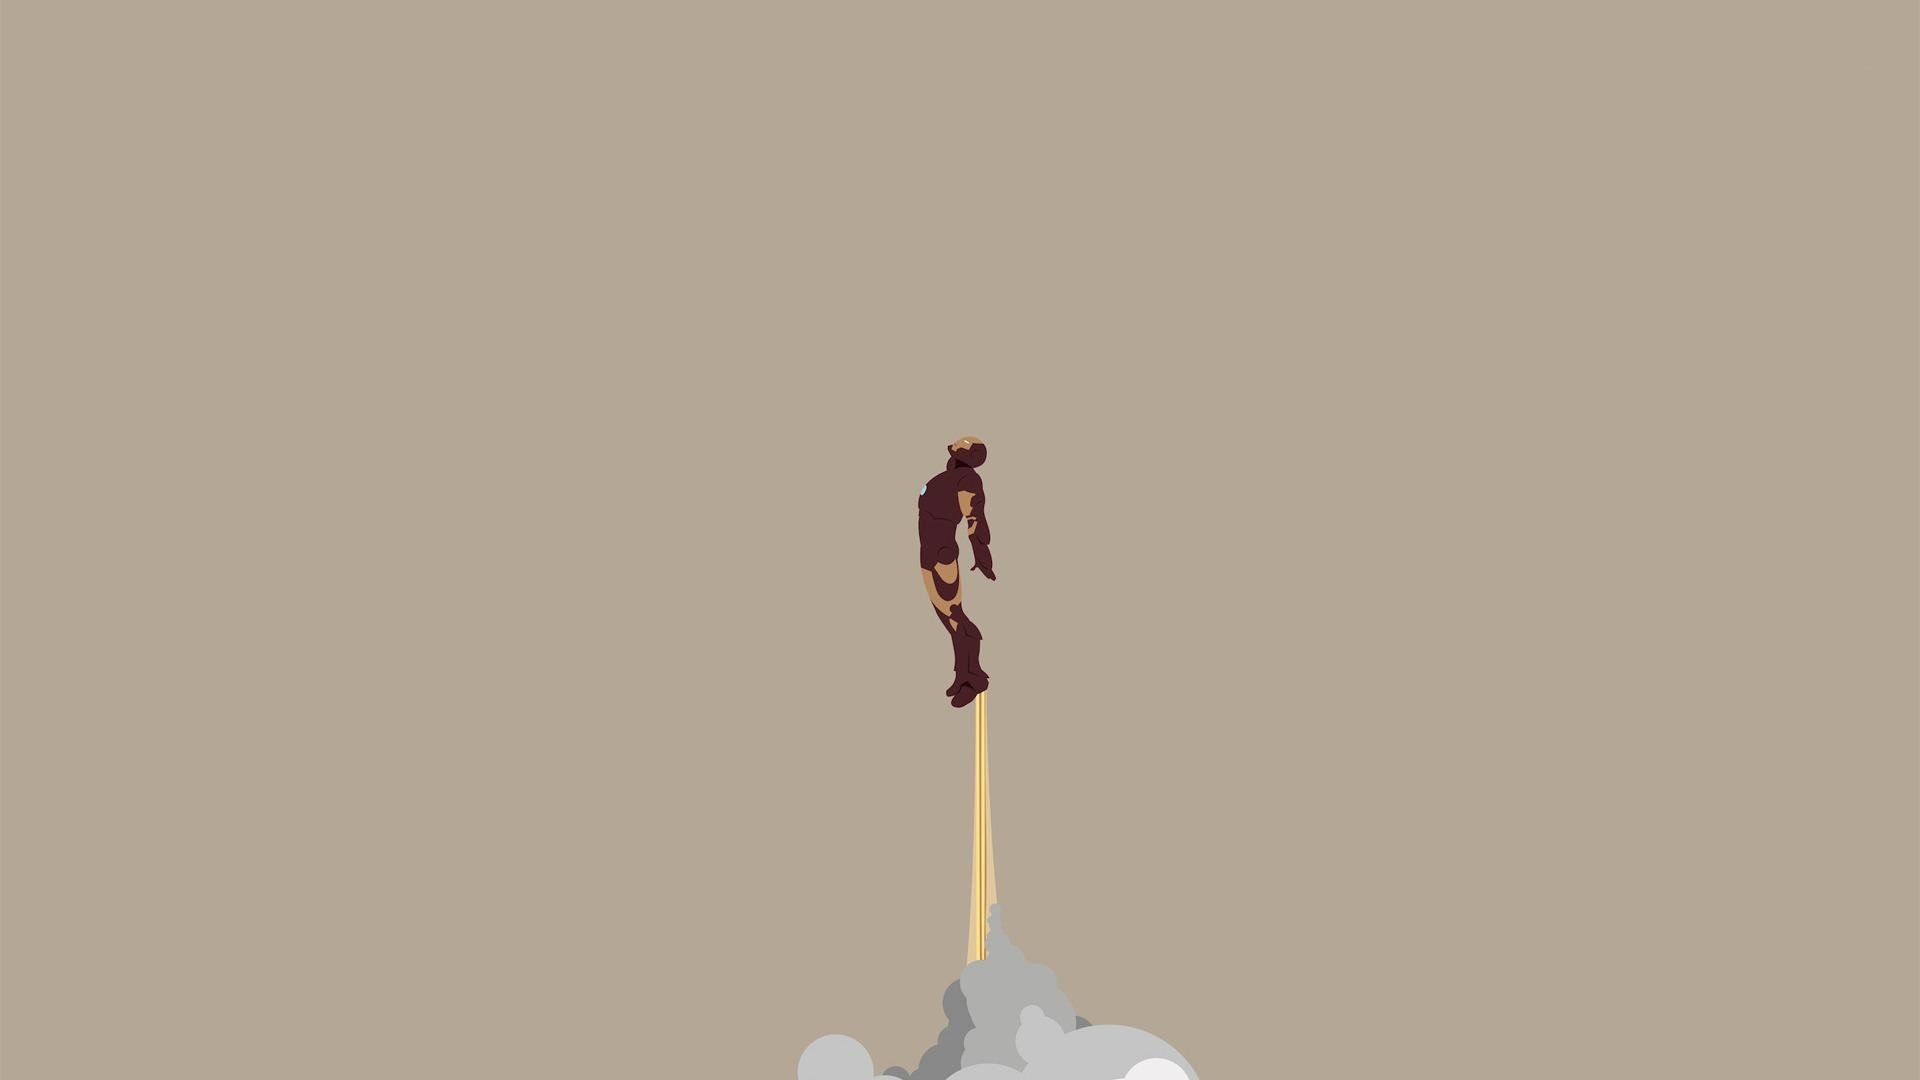 Minimalistic Iron Man Wallpaper 1920x1080 233972 Wallpaperup